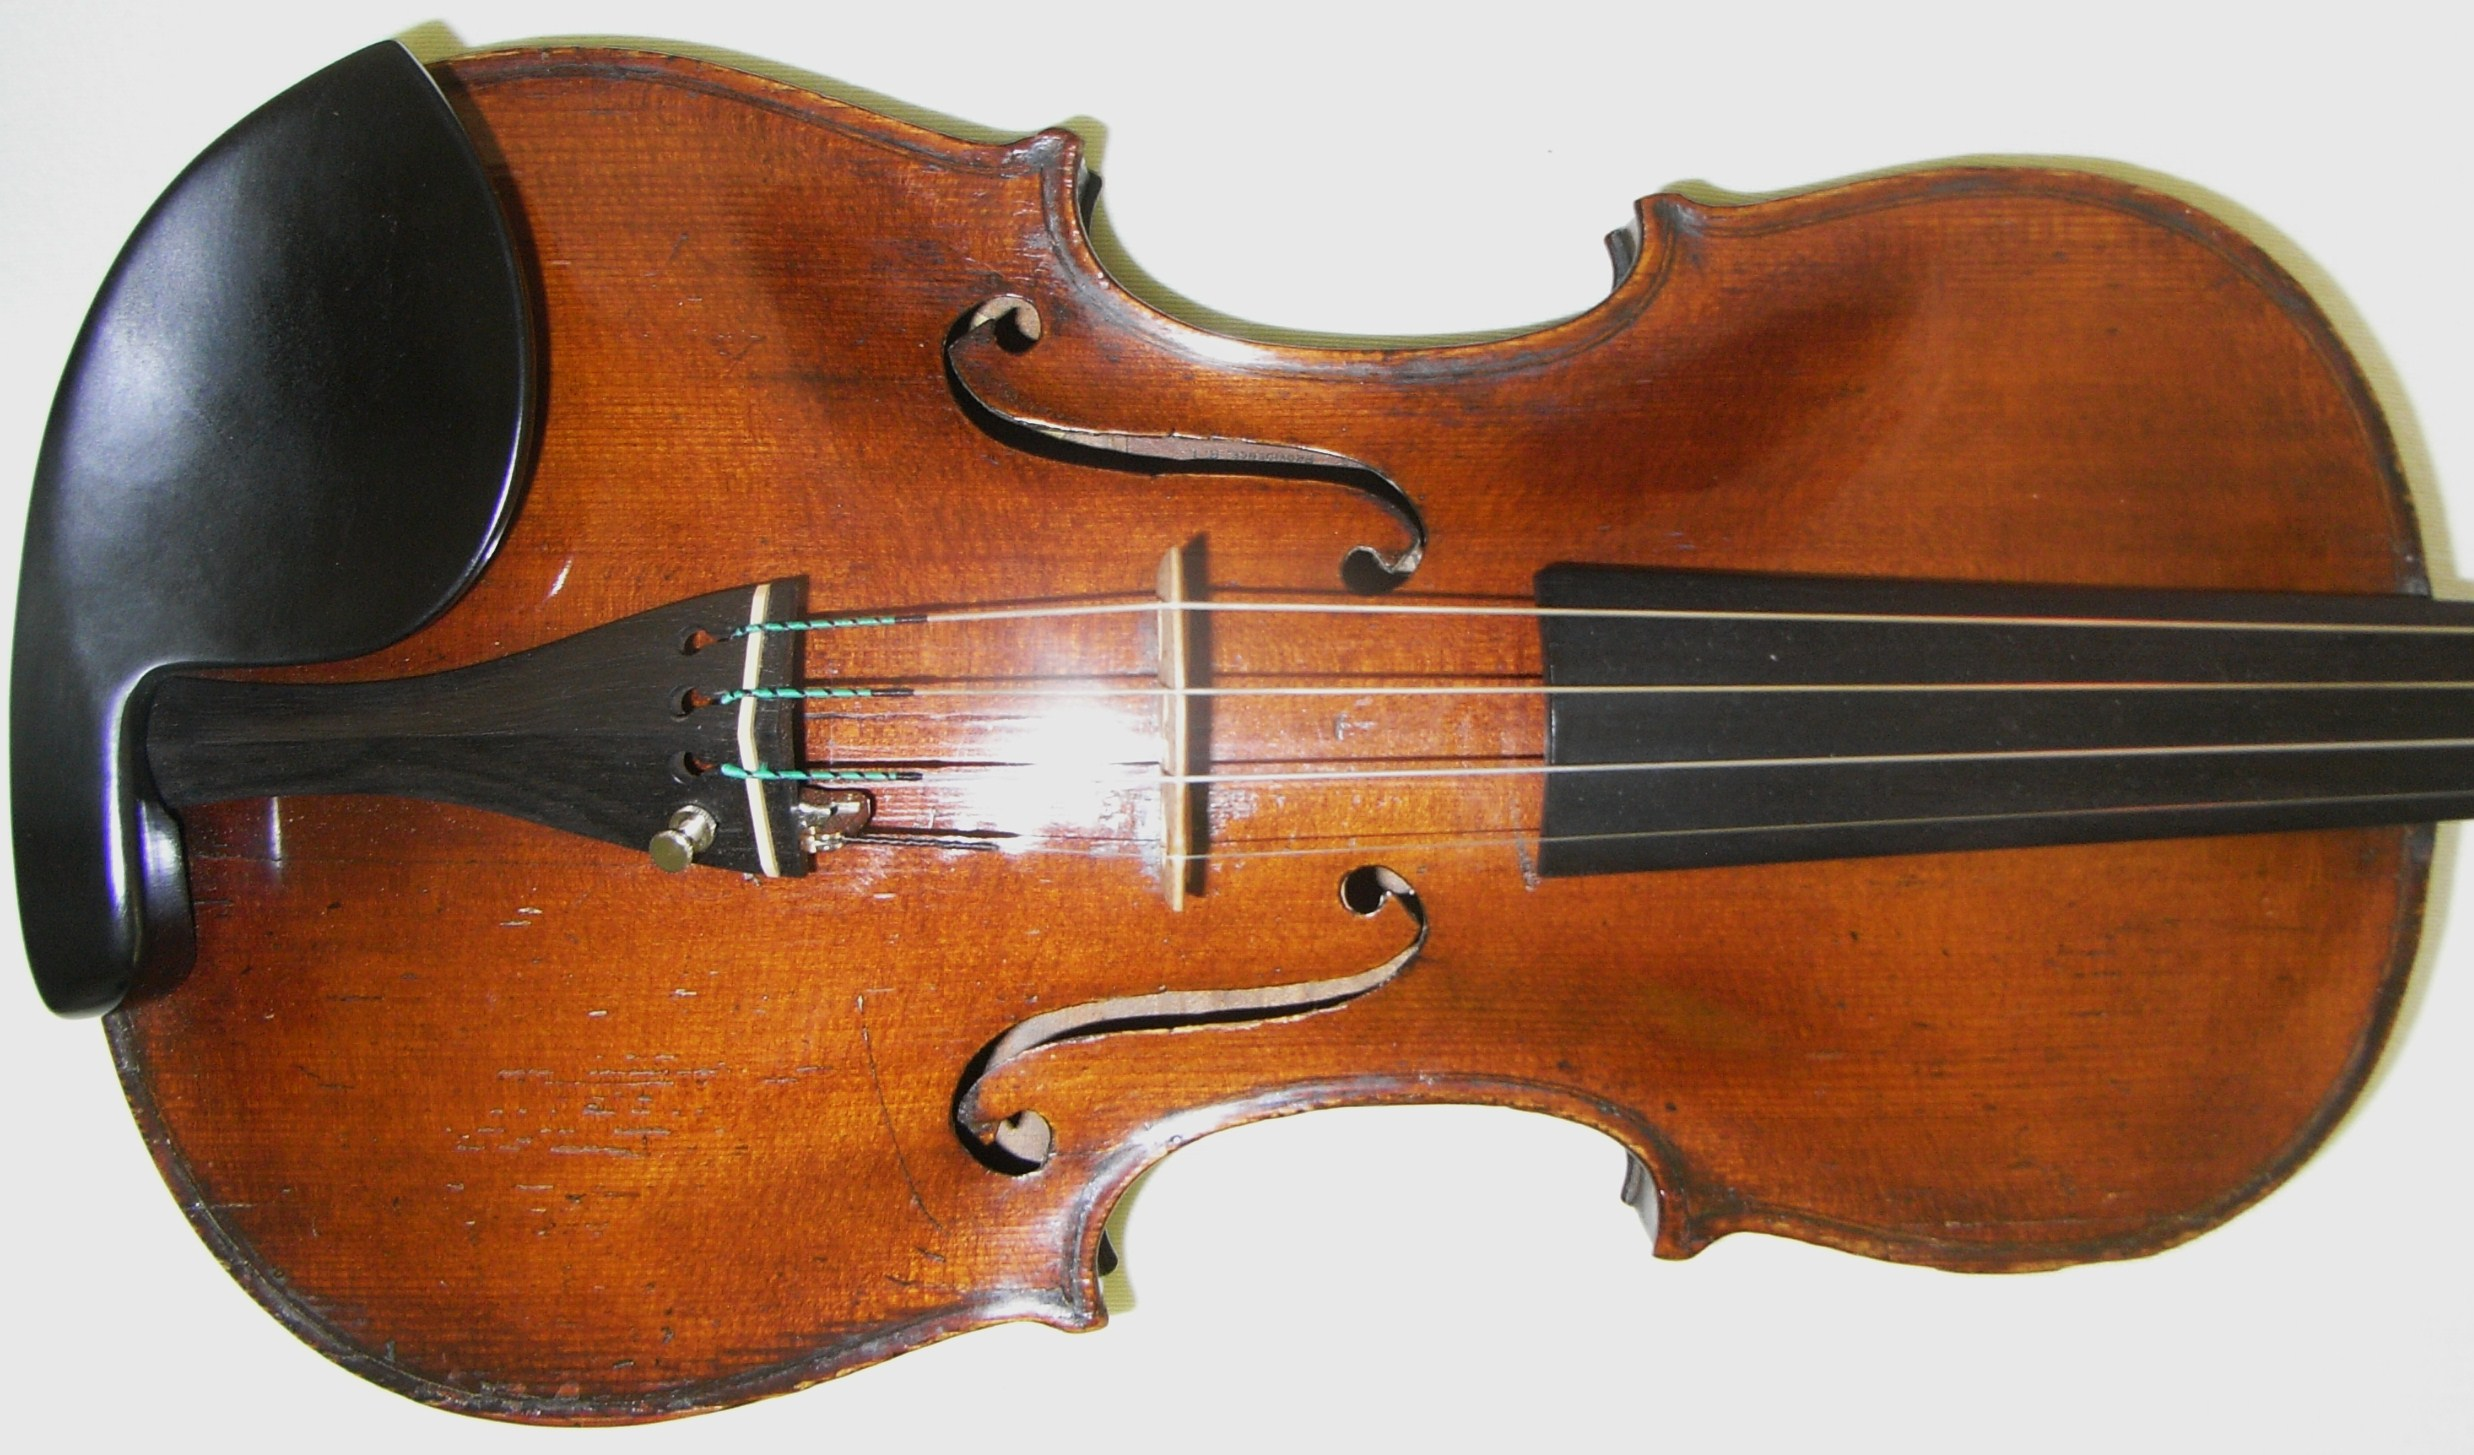 Excellent old antique German Klingenthal violin 1800-1820